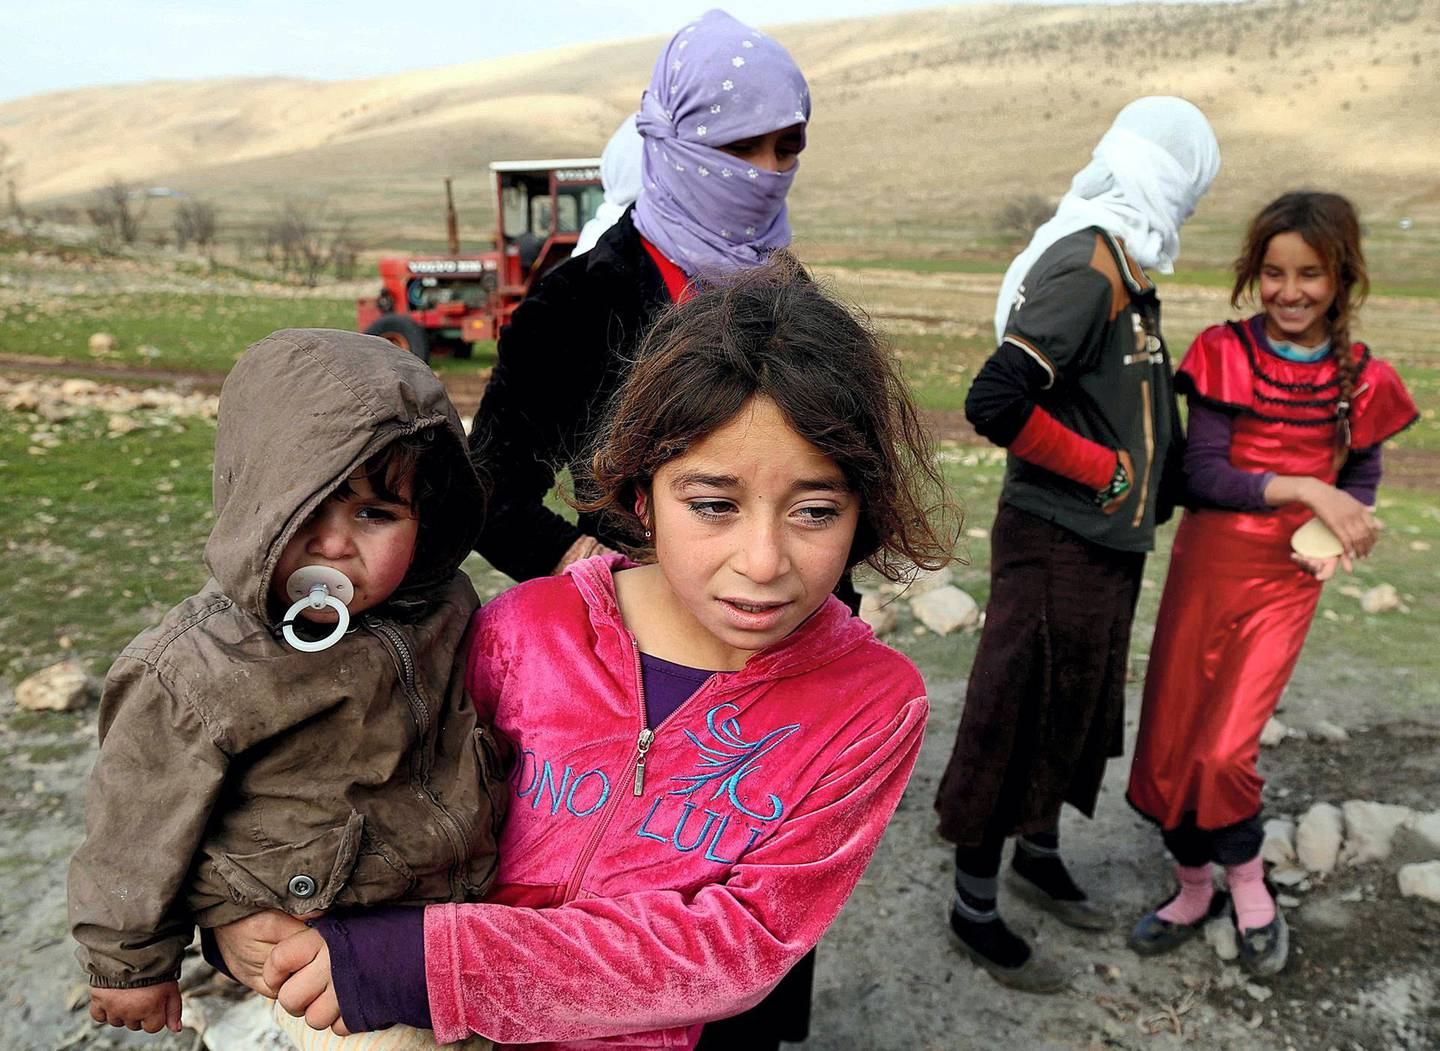 SINJAR, IRAQ - DECEMBER 20: Yezidis, fled from Islamic State of Iraq and Levant (ISIL) forces' attacks on their home town Sinjar, stay in harsh conditions as the winter starts, in a valley of western Sinjar Mountain in Sinjar district of Mosul, Irak on December 20, 2014. Yezidi women and children are seen out side of the tents. (Photo by Emrah Yorulmaz/Anadolu Agency/Getty Images)